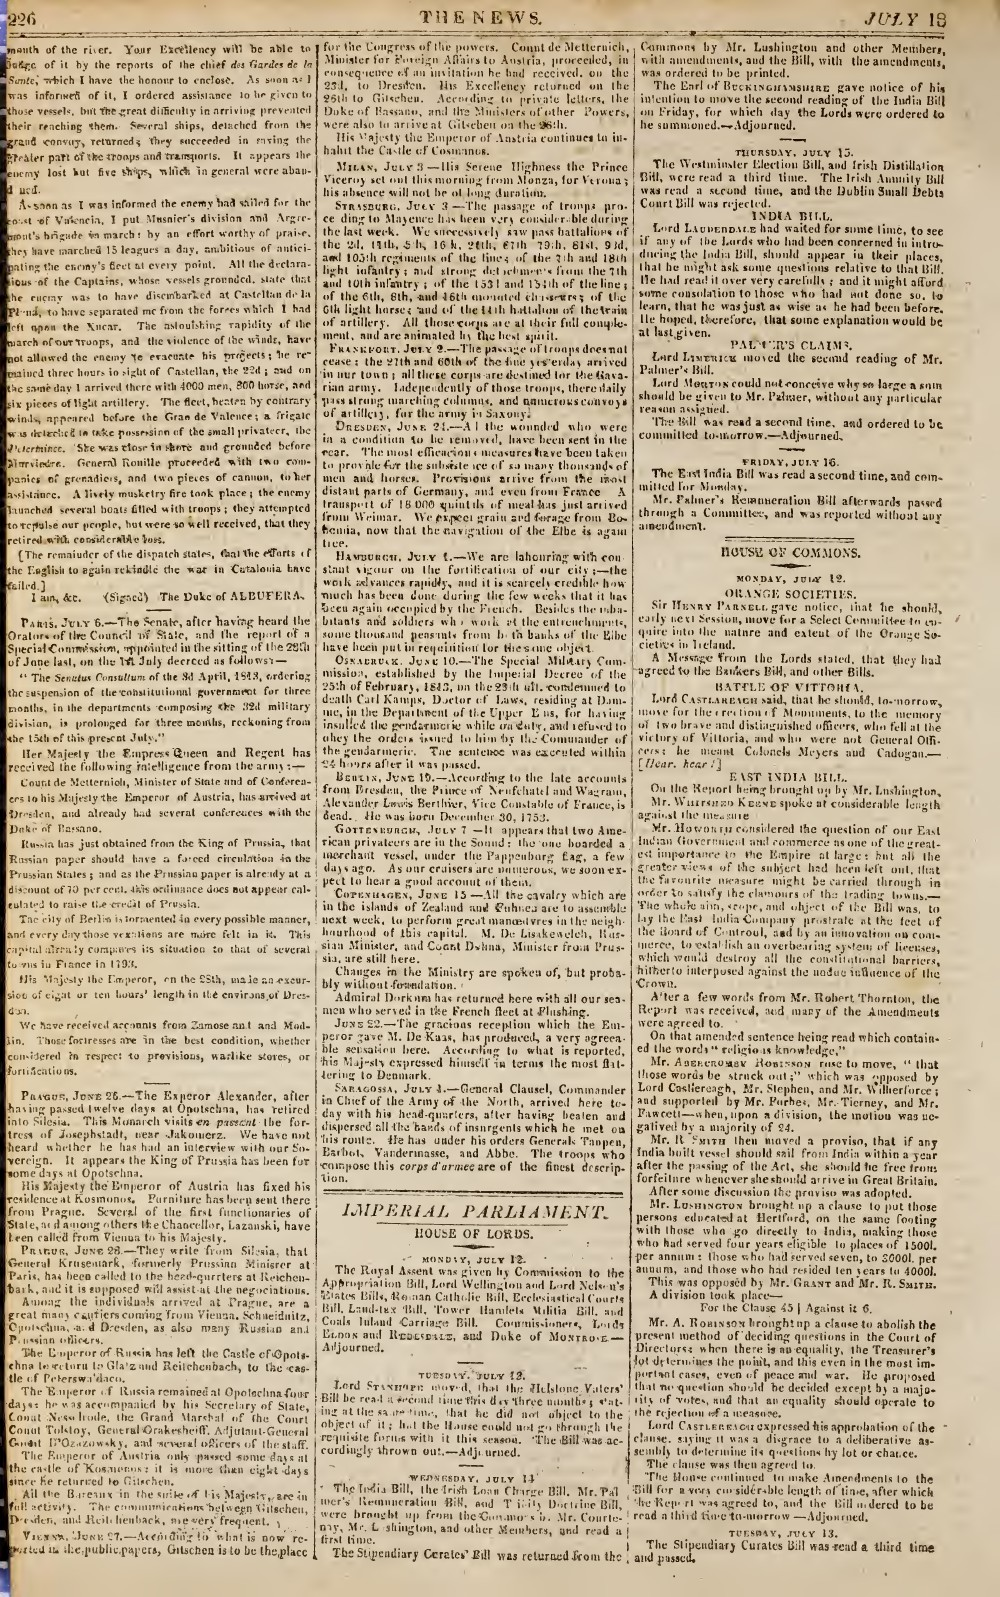 The News, 18 July 1813, No. 422